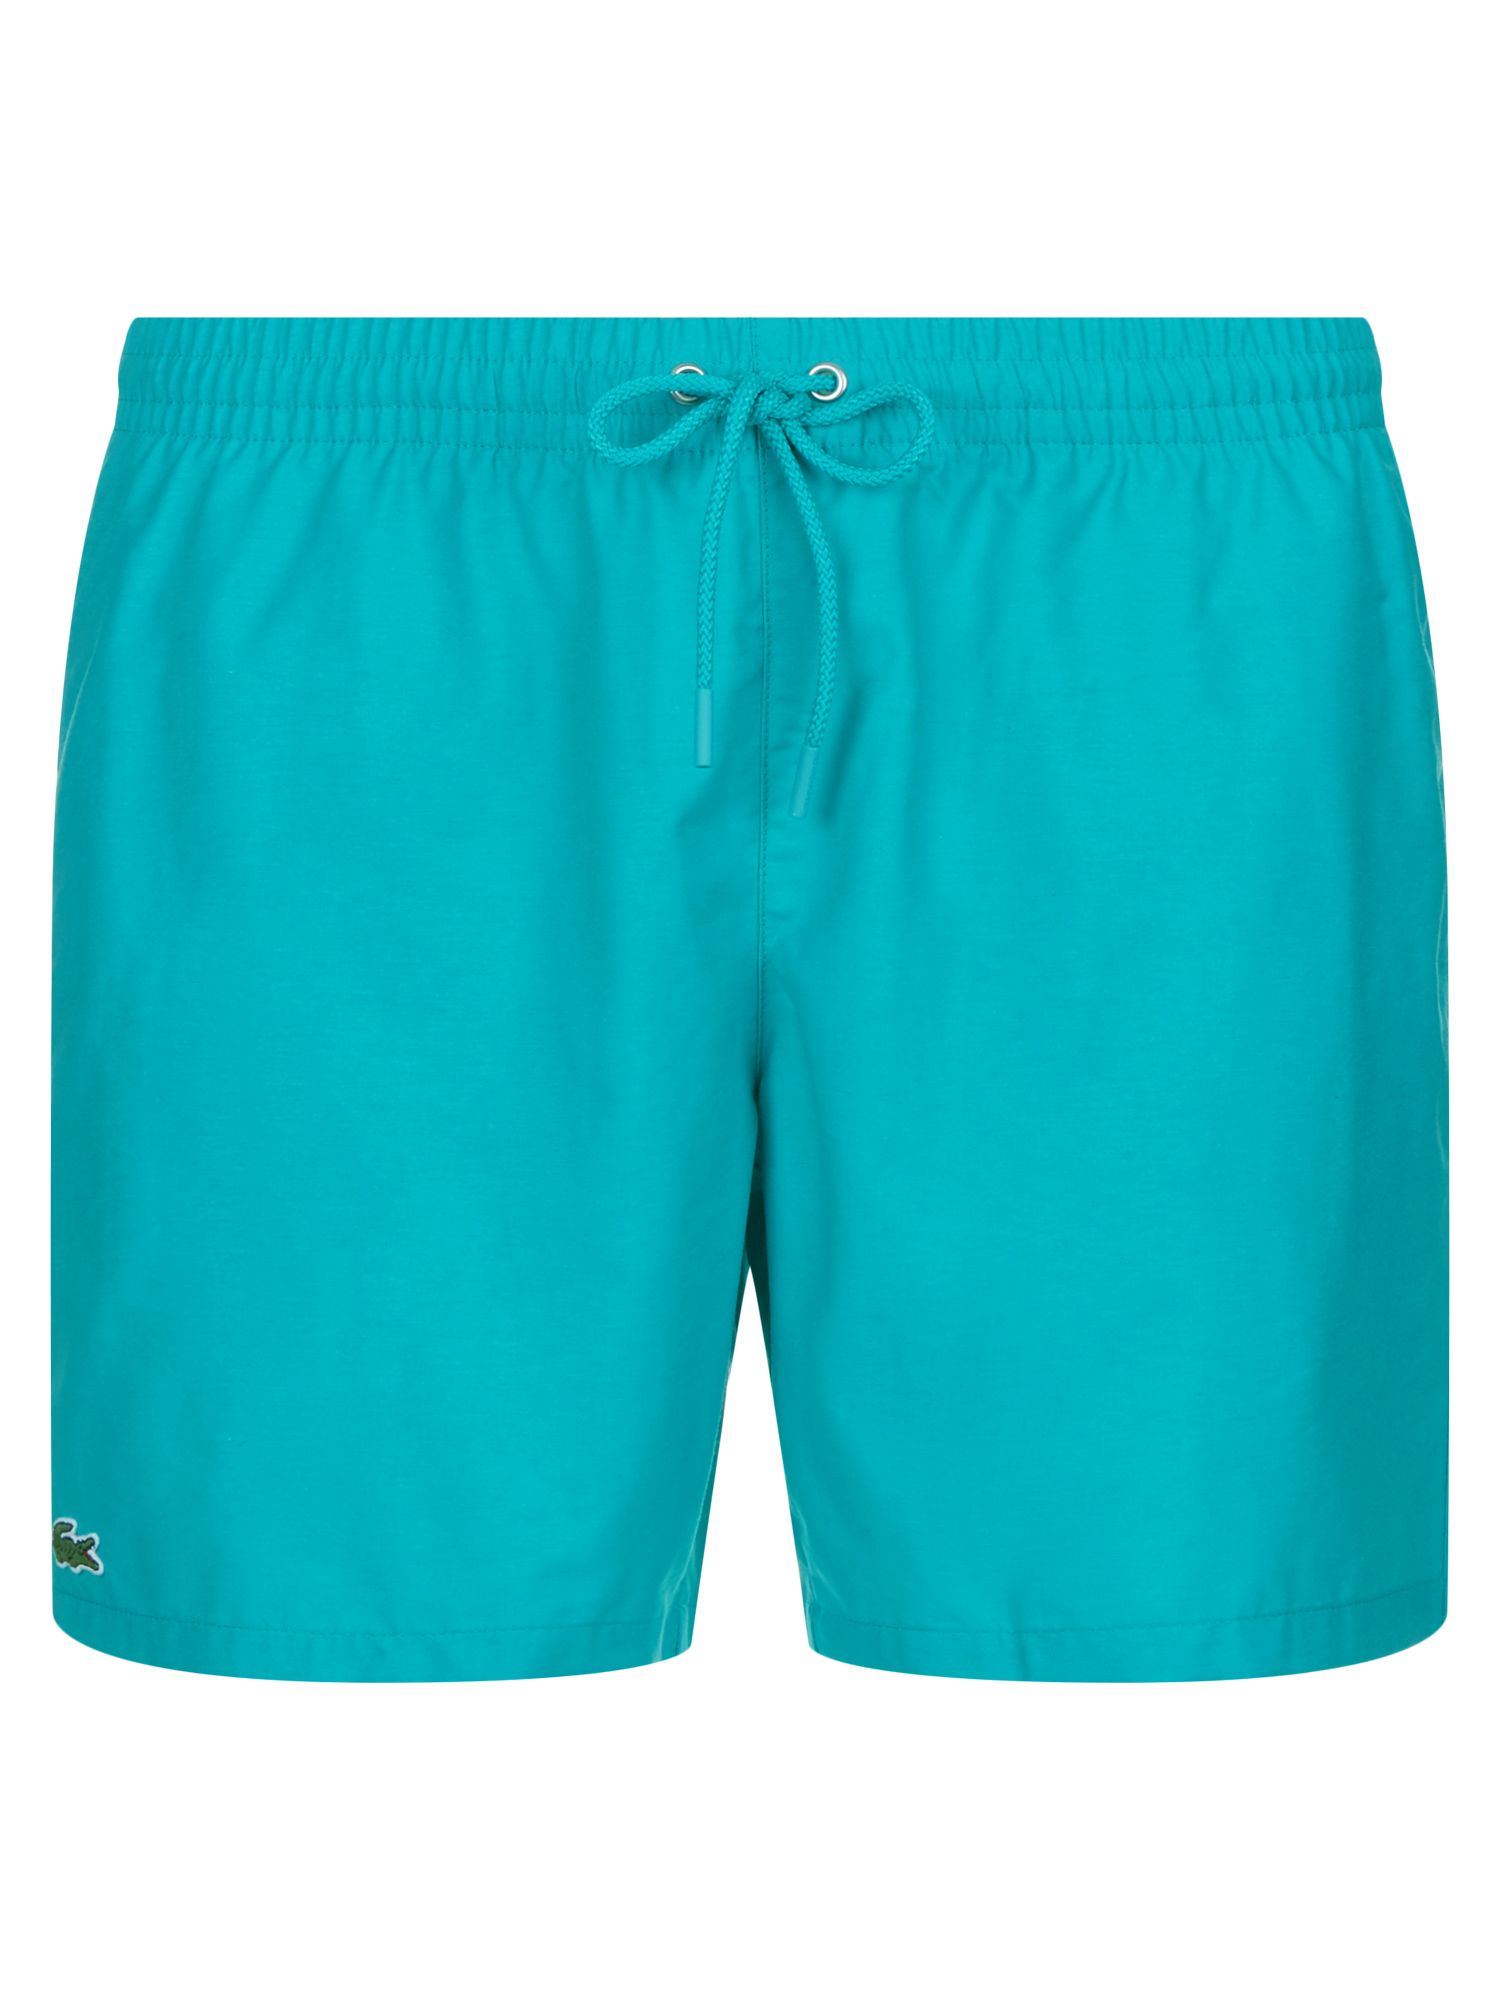 Men's Lacoste Swimming trunks in taffeta, Gleam Blue